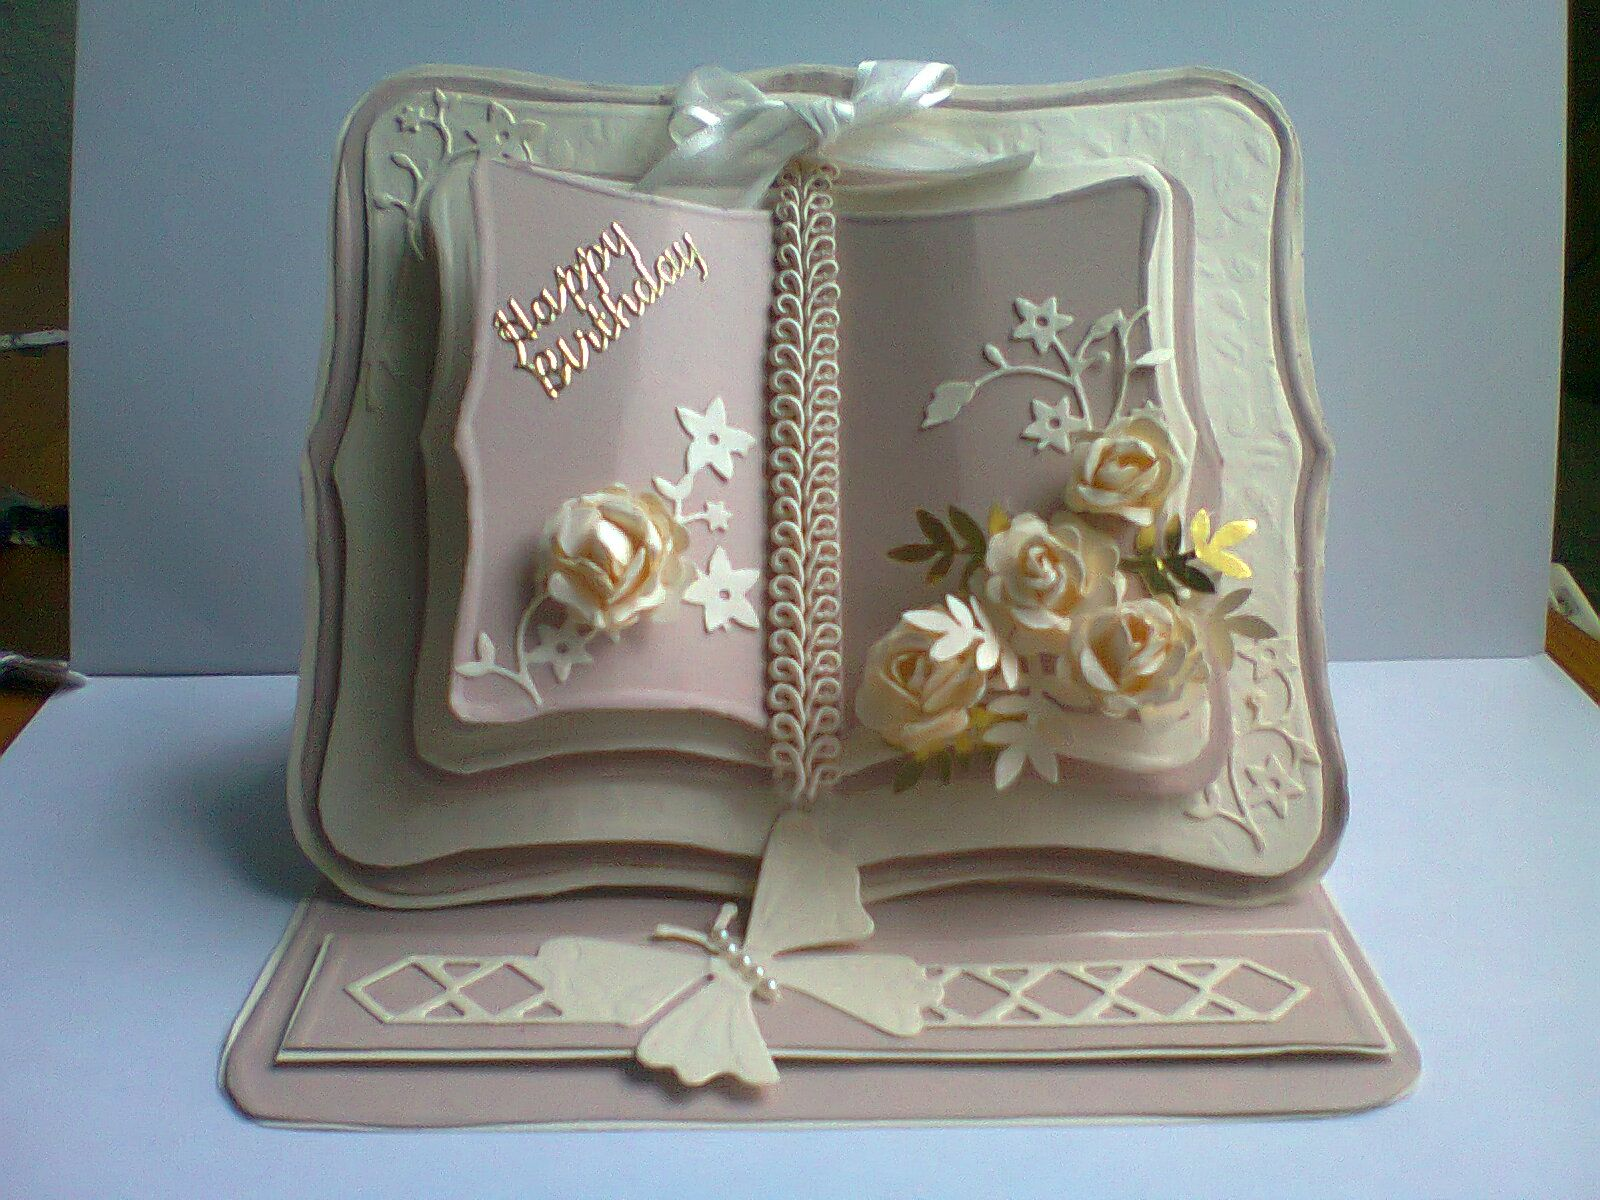 Pin By Cheryl Brannon On Cards Fancy Folds 3 Inspirational Cards Christening Cards Shaped Cards